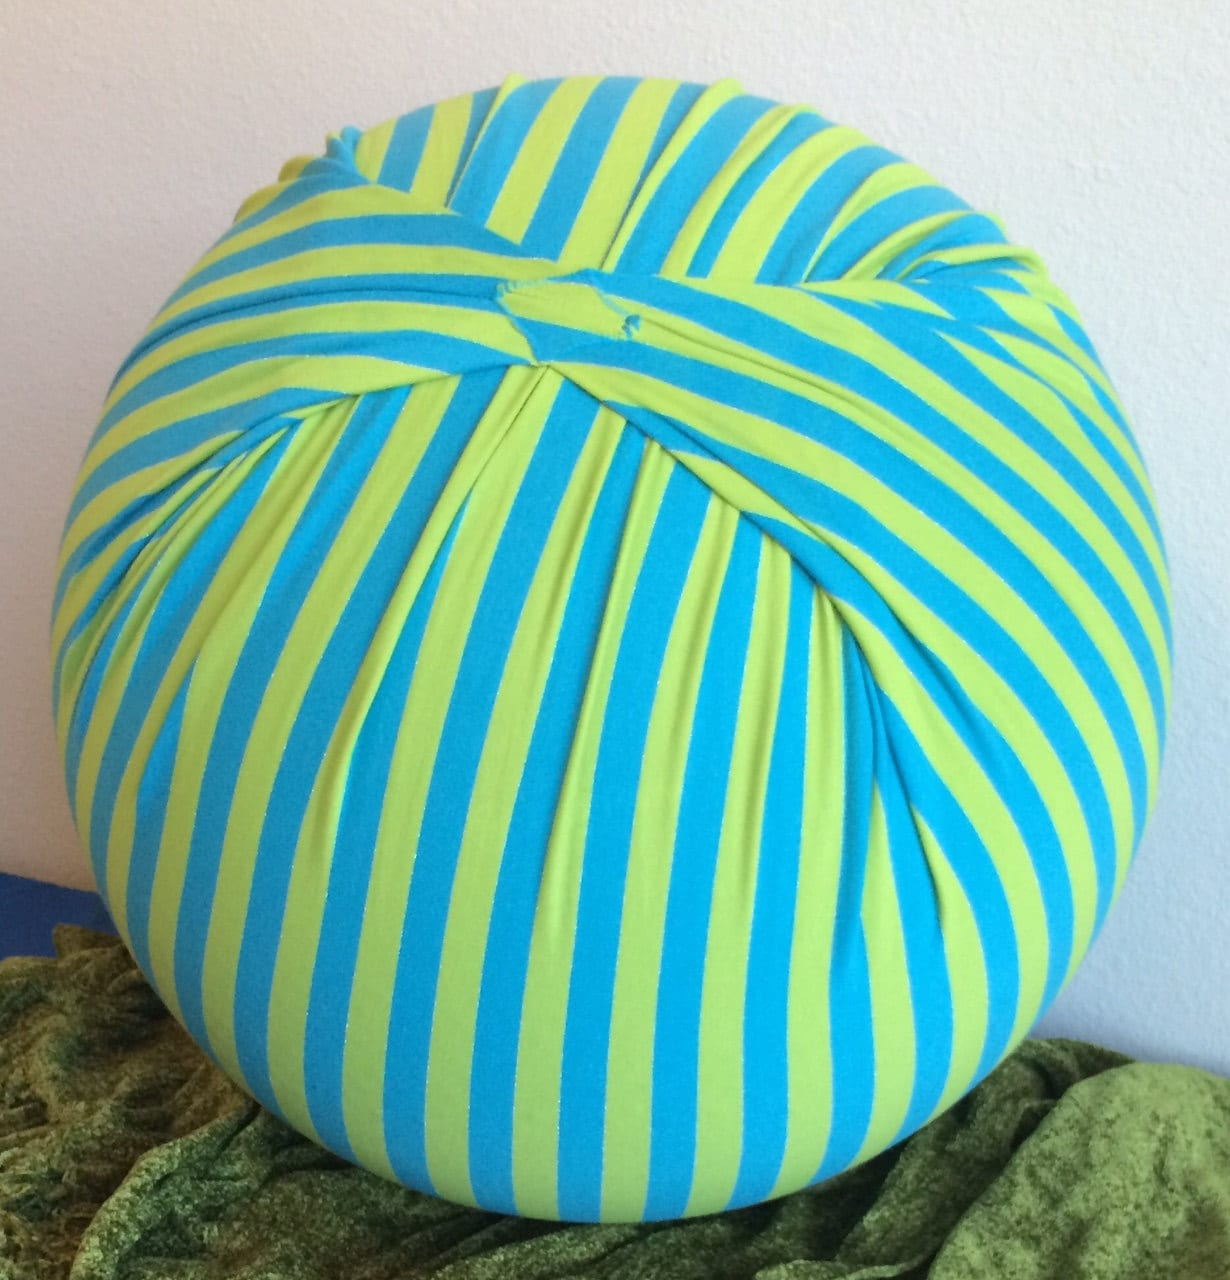 Birth Ball Cover Or Peanut Ball Cover With Handle Yoga Ball